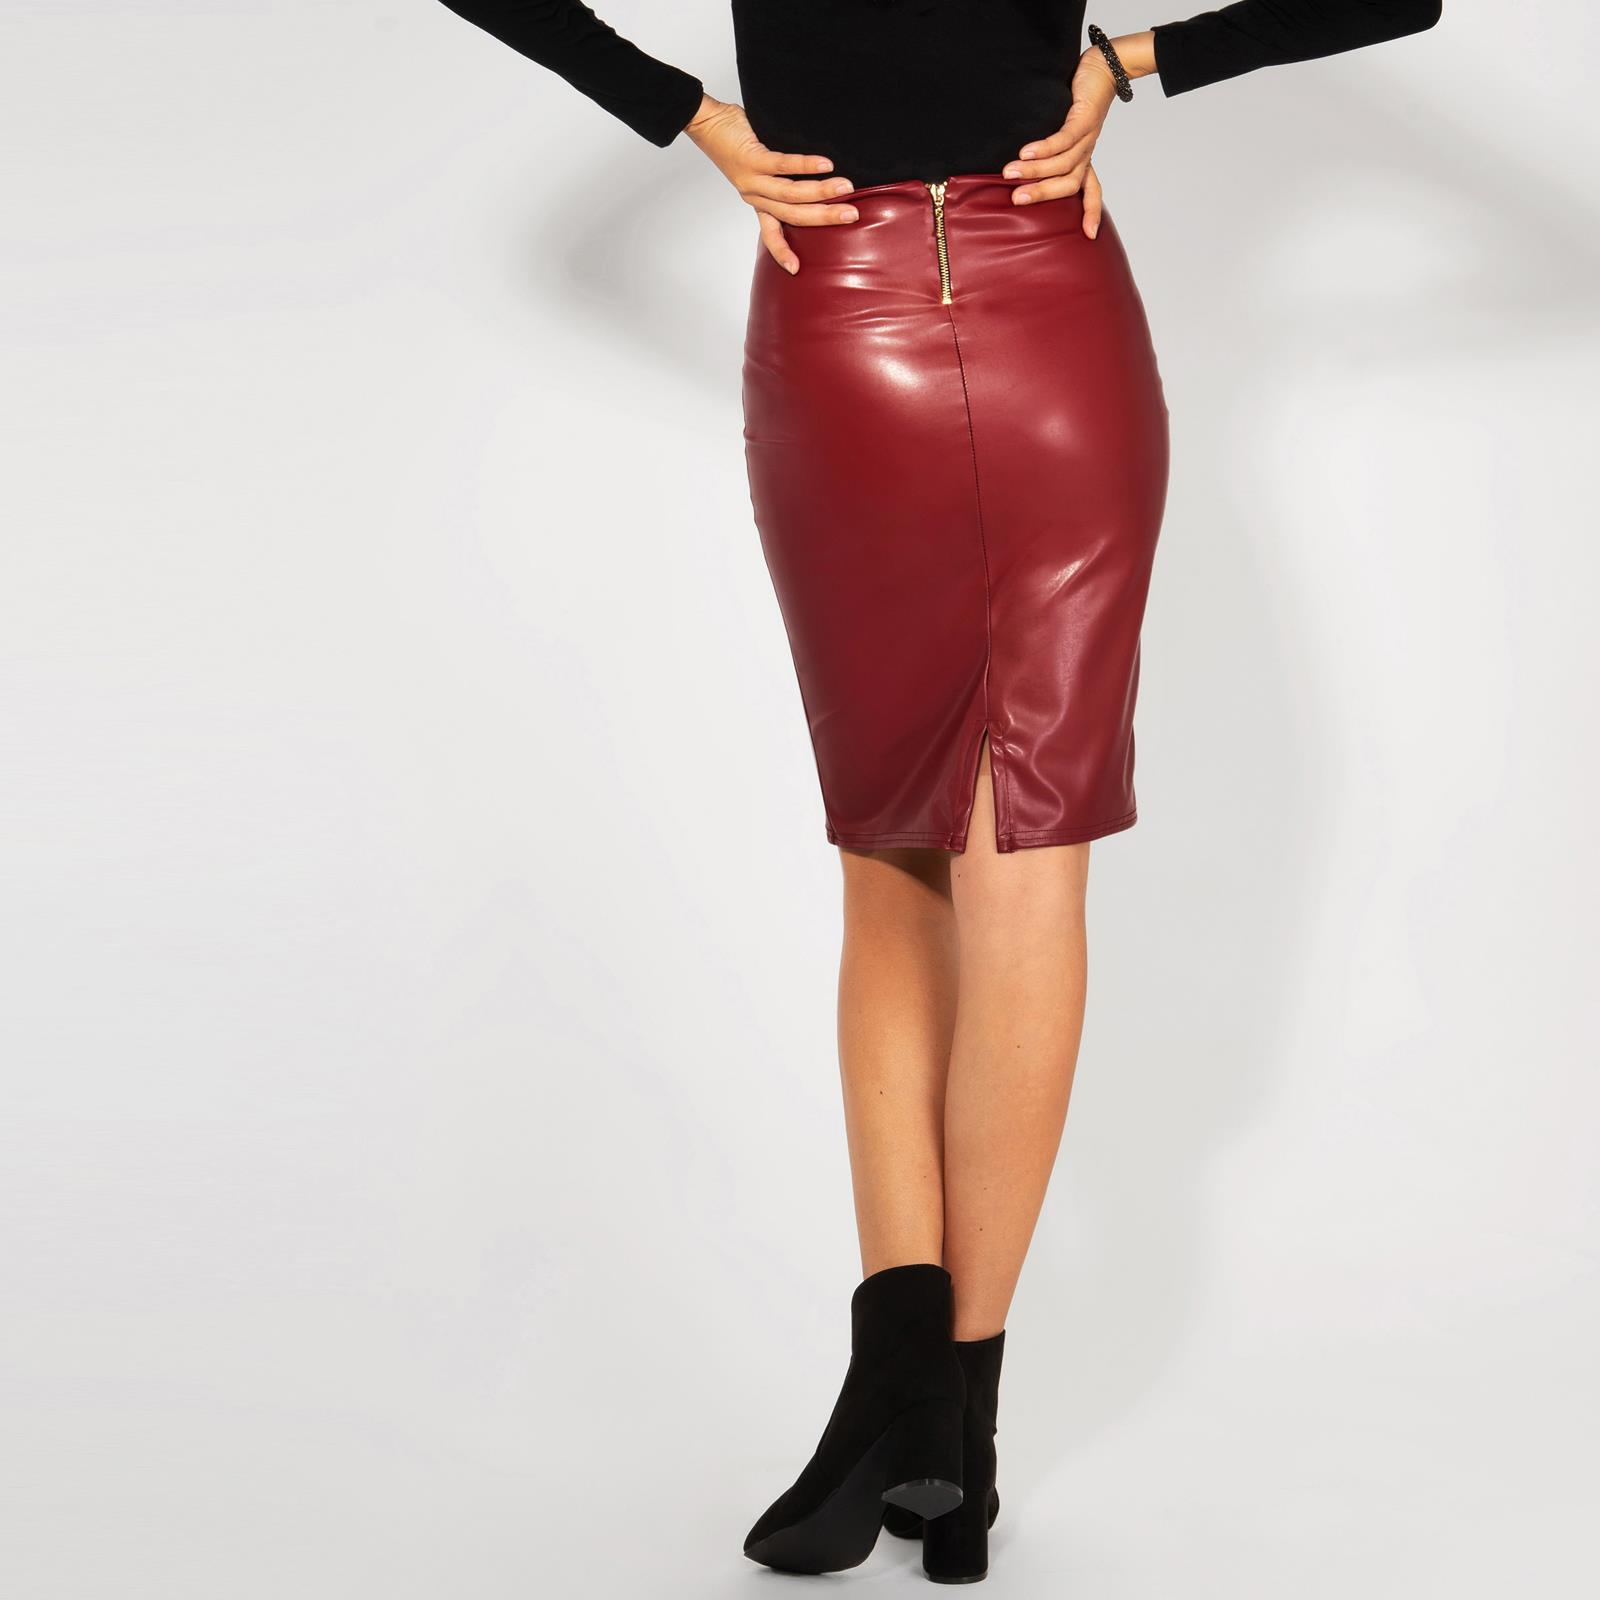 Womens-Ladies-Leather-Pencil-Skirt-Sexy-Wet-Look-Stretch-PU-Mini-Midi-Bodycon thumbnail 13